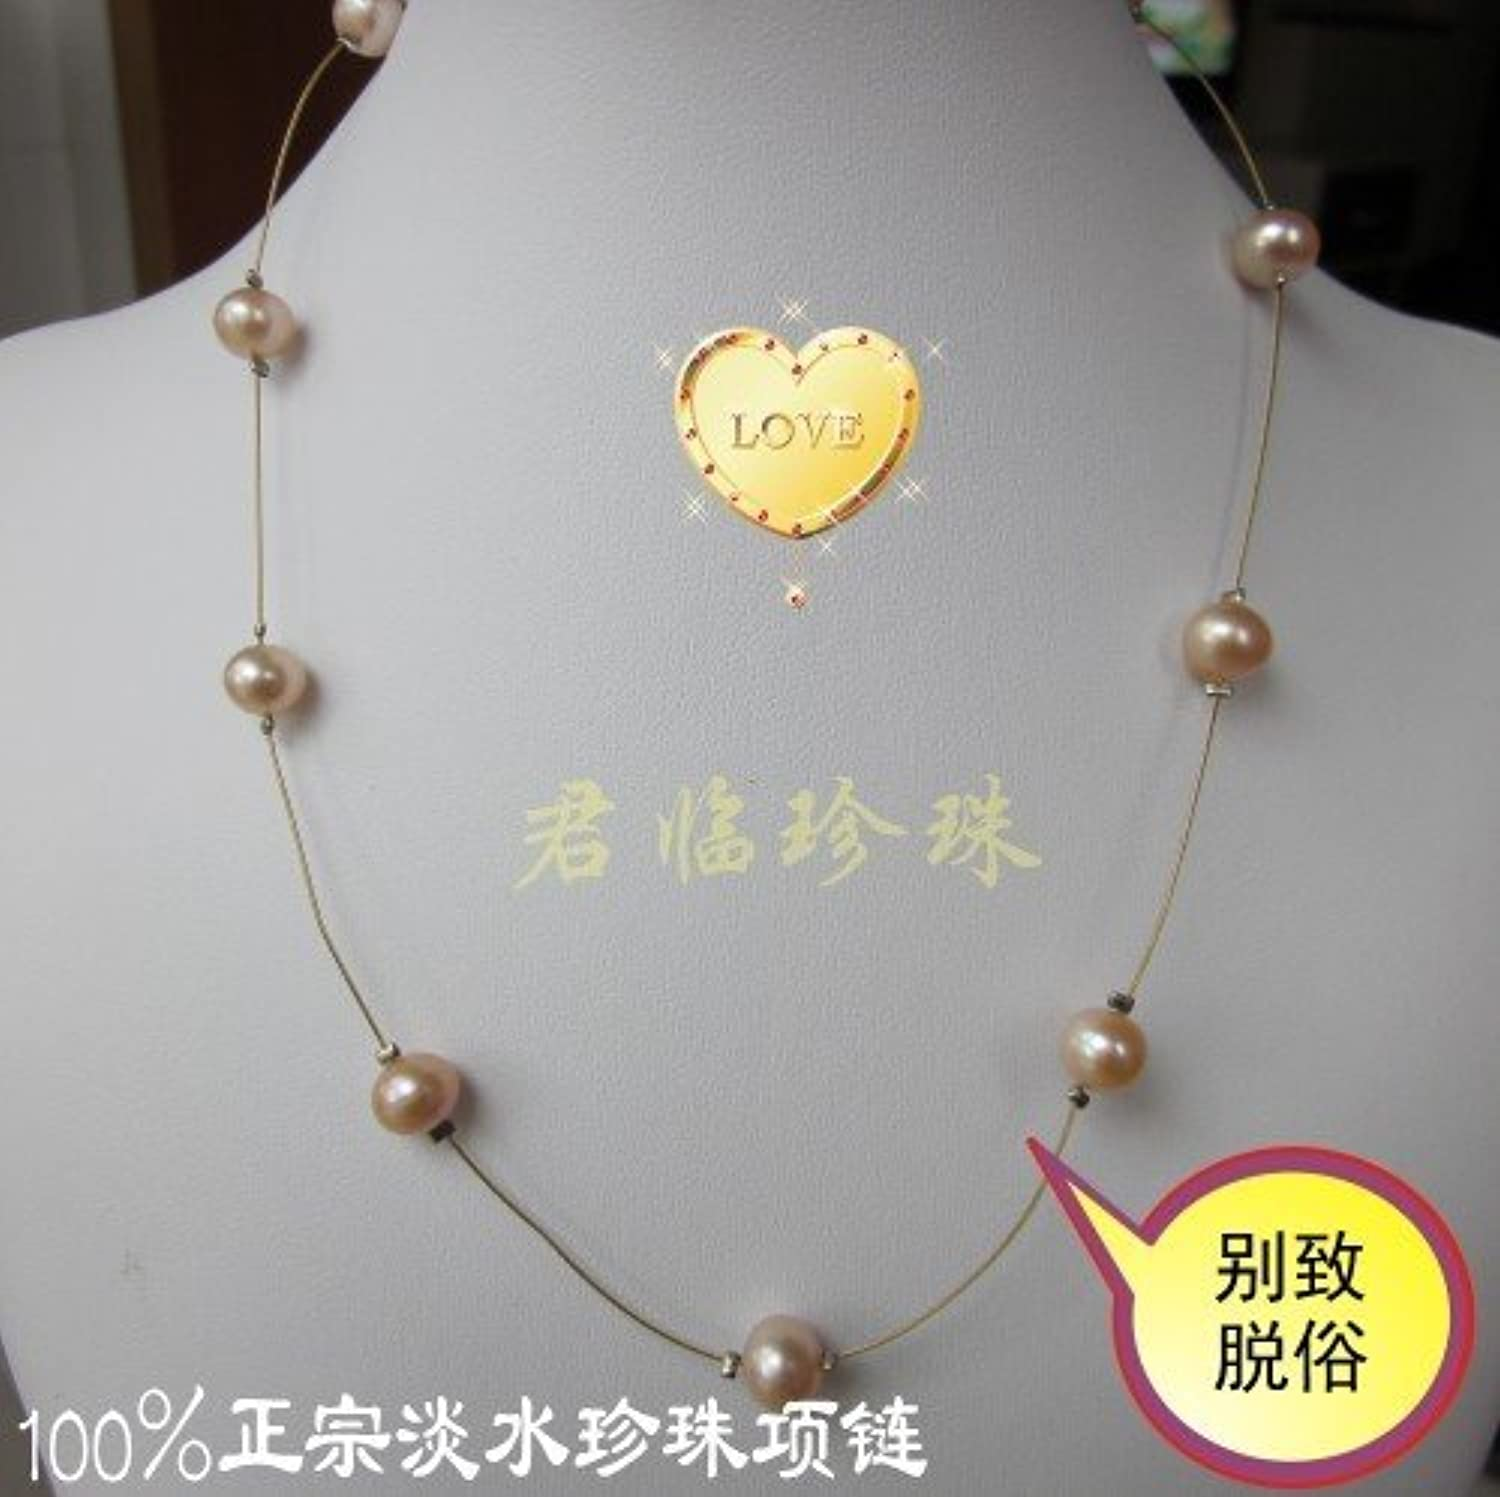 Women Girls Short Paragraph Clavicle Chain Short Paragraph Pearl Necklace Pendant Fashion Pearl Necklace Pendant Genuine Interval Playful Refined